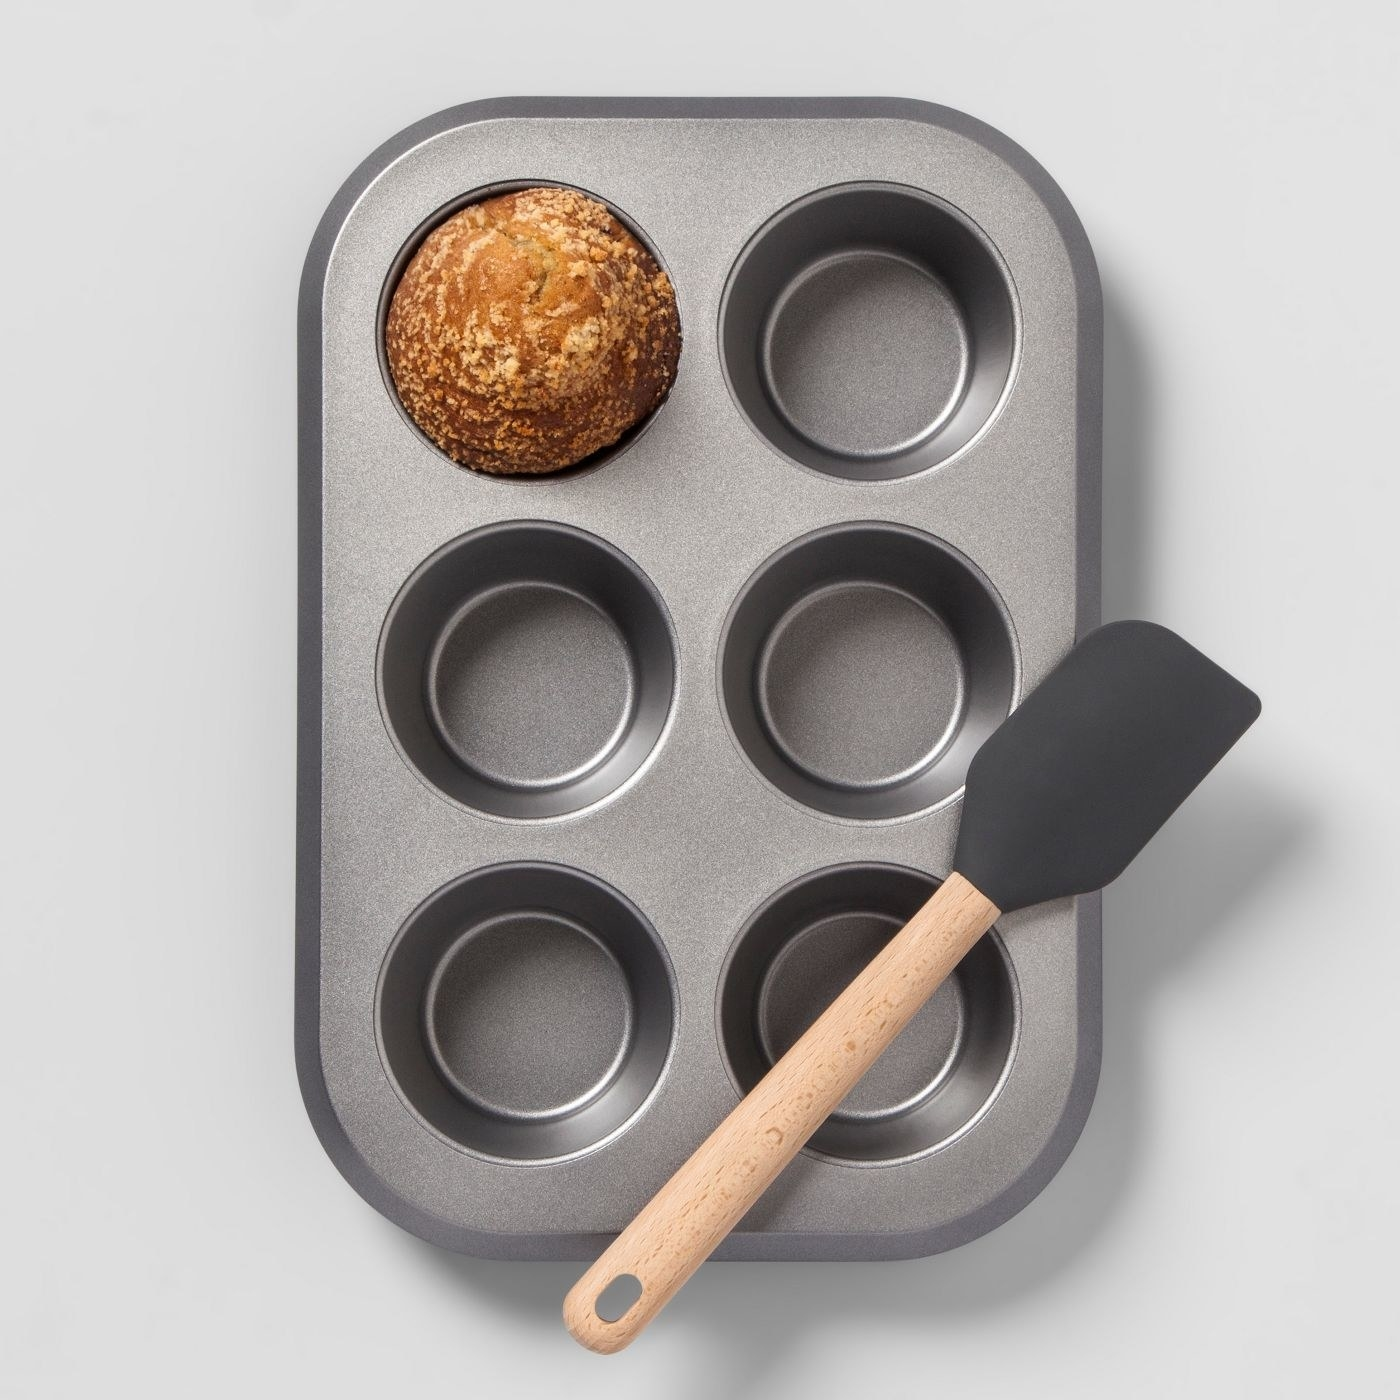 jumbo muffin tin with one muffin in it and a spatula on top